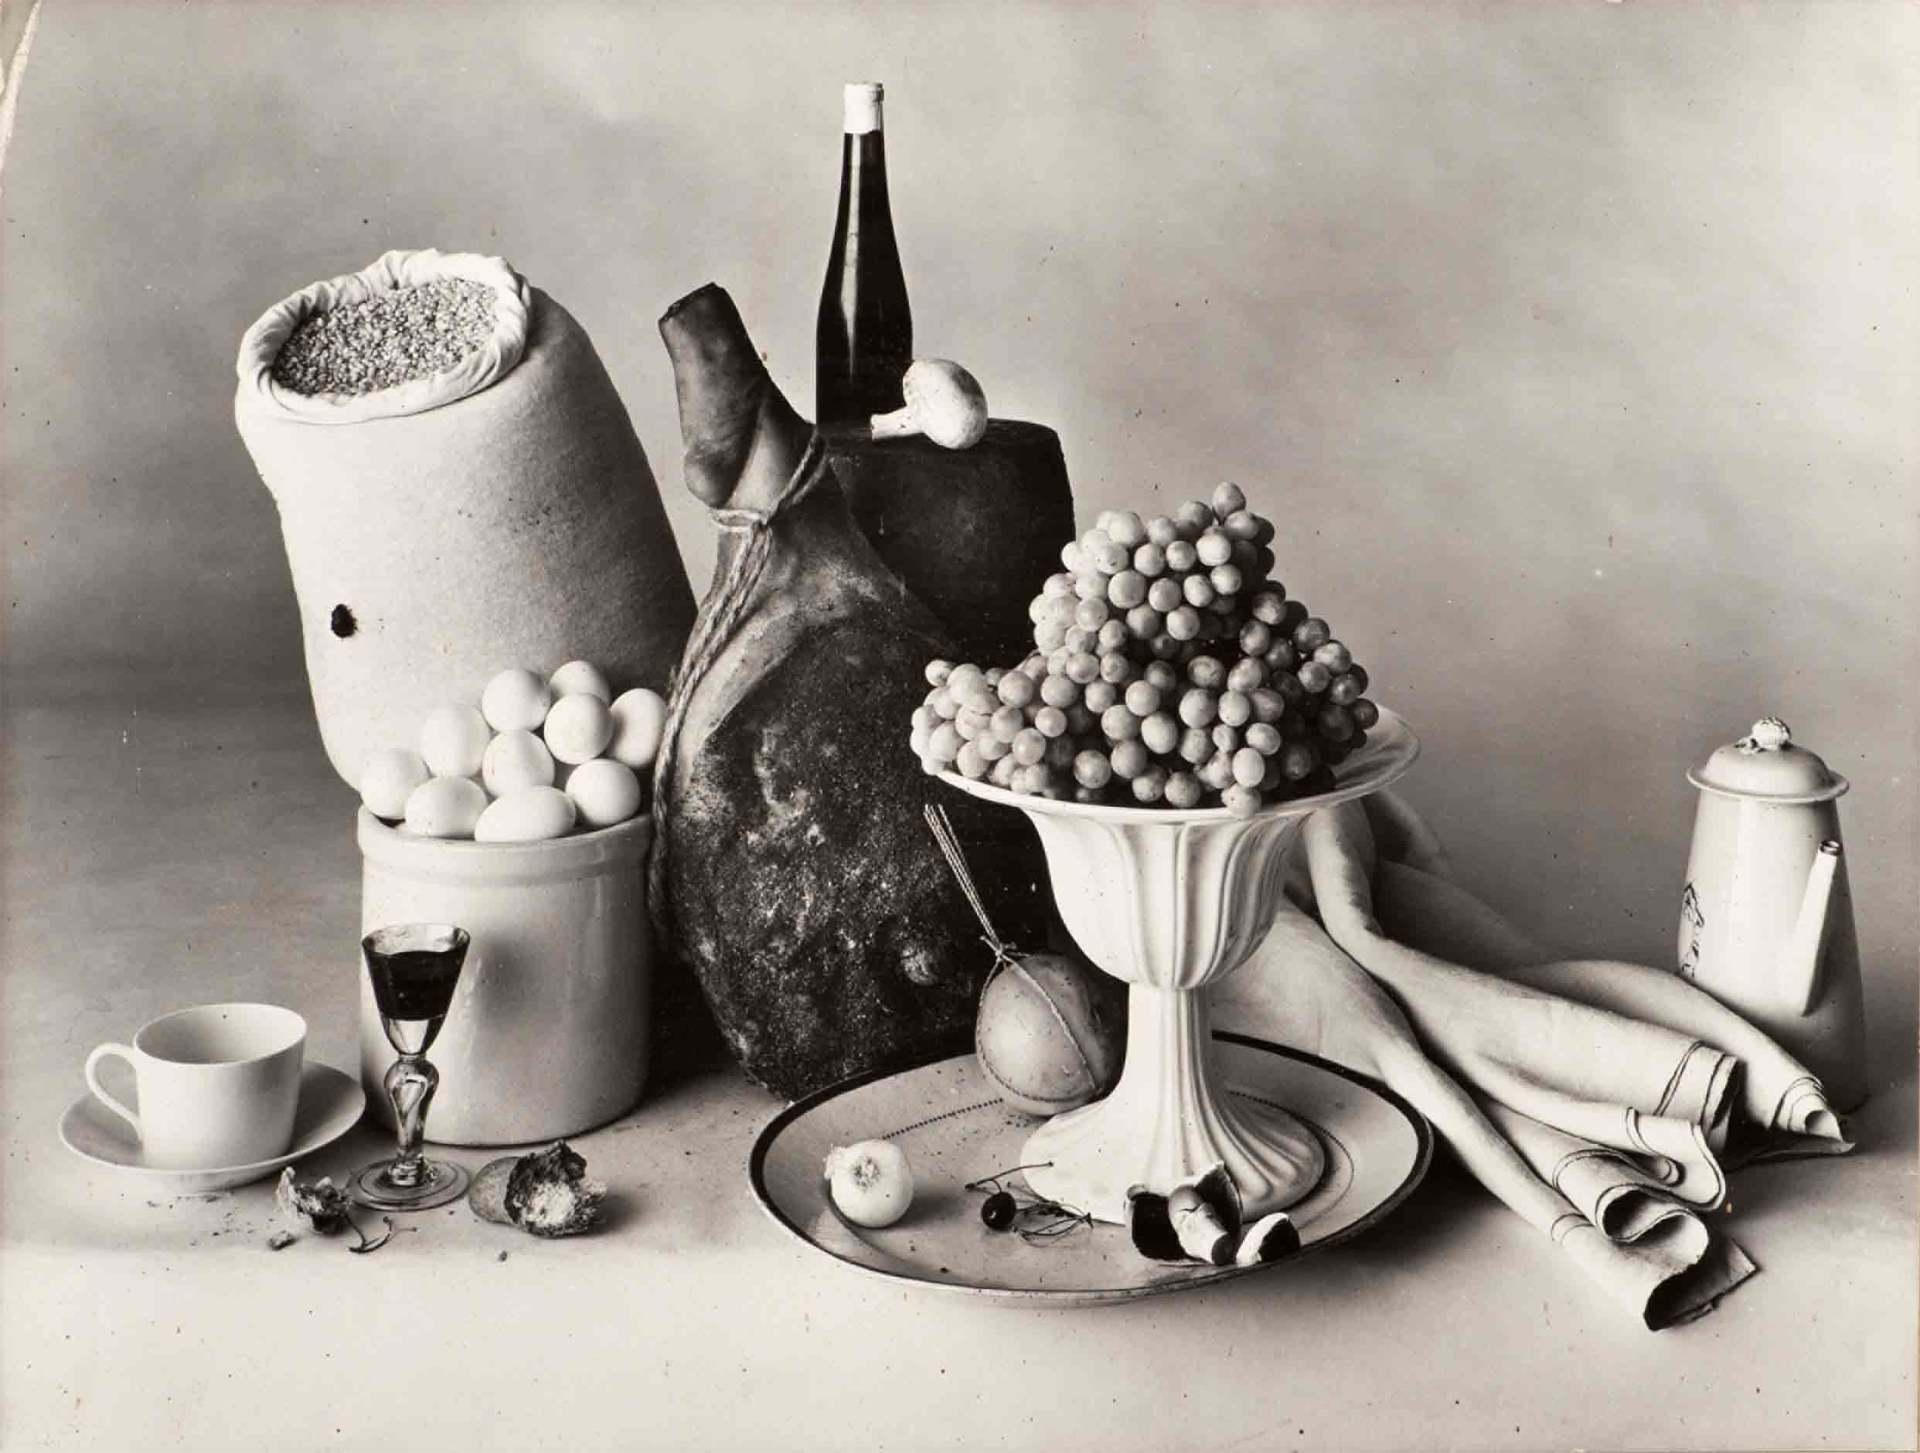 the life and works of irving penn Irving penn: centennial, opening april 24, 2017, will be the most comprehensive exhibition of the great american photographer's work to date and will include both masterpieces and hitherto unknown prints from all his major series.